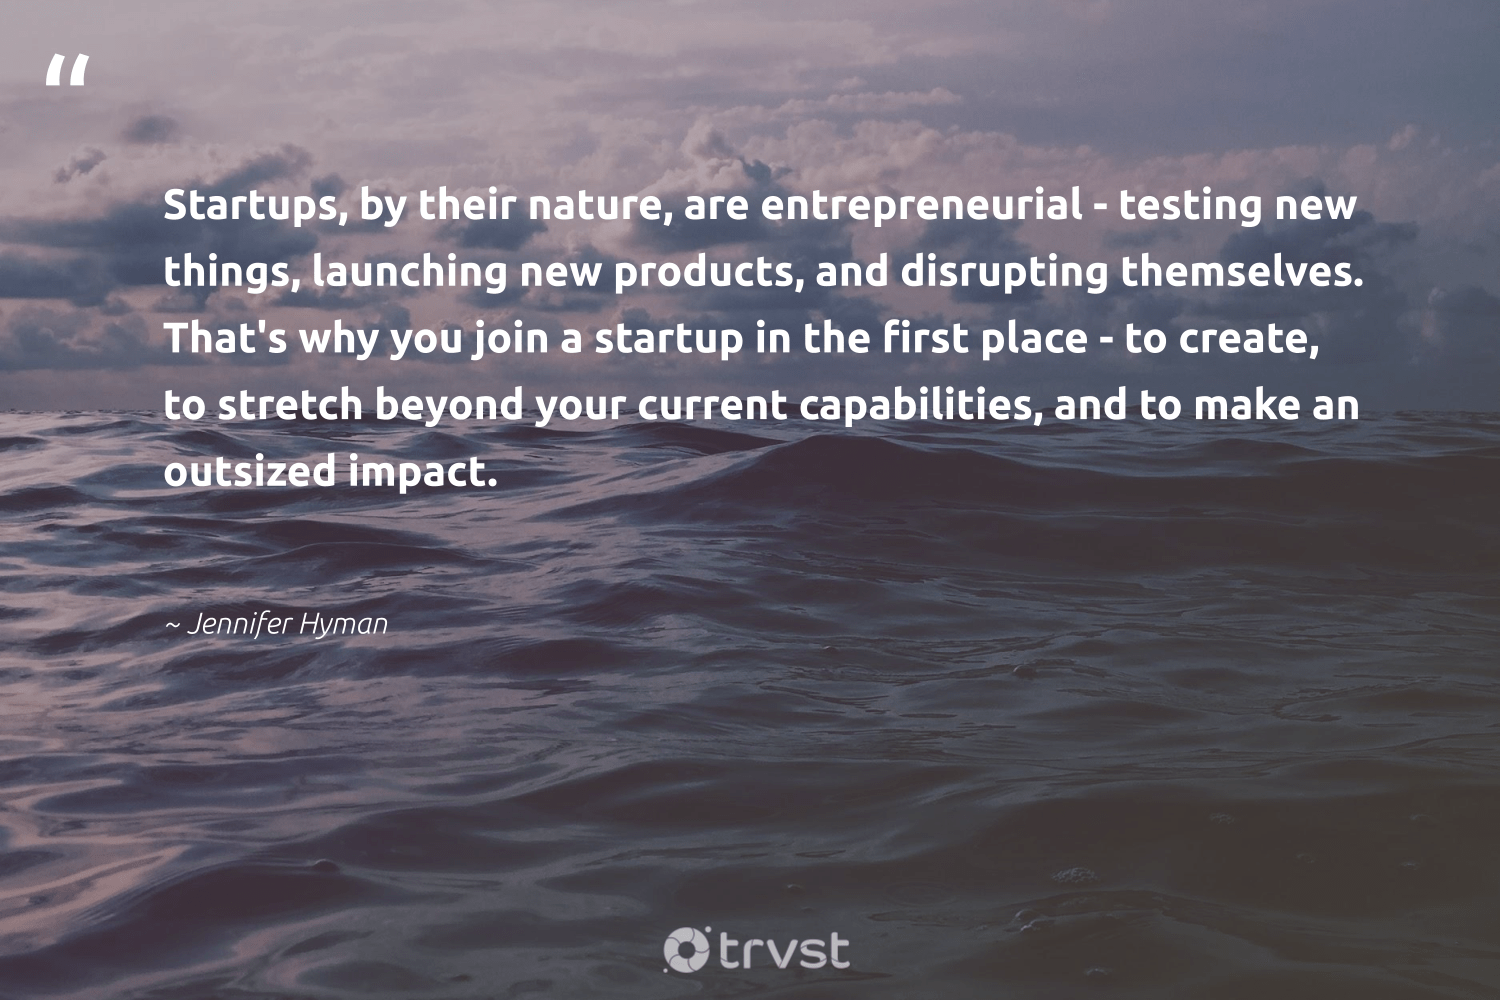 """""""Startups, by their nature, are entrepreneurial - testing new things, launching new products, and disrupting themselves. That's why you join a startup in the first place - to create, to stretch beyond your current capabilities, and to make an outsized impact.""""  - Jennifer Hyman #trvst #quotes #impact #nature #startup #planet #makeadifference #green #gogreen #conservation #socialchange #climatechange"""